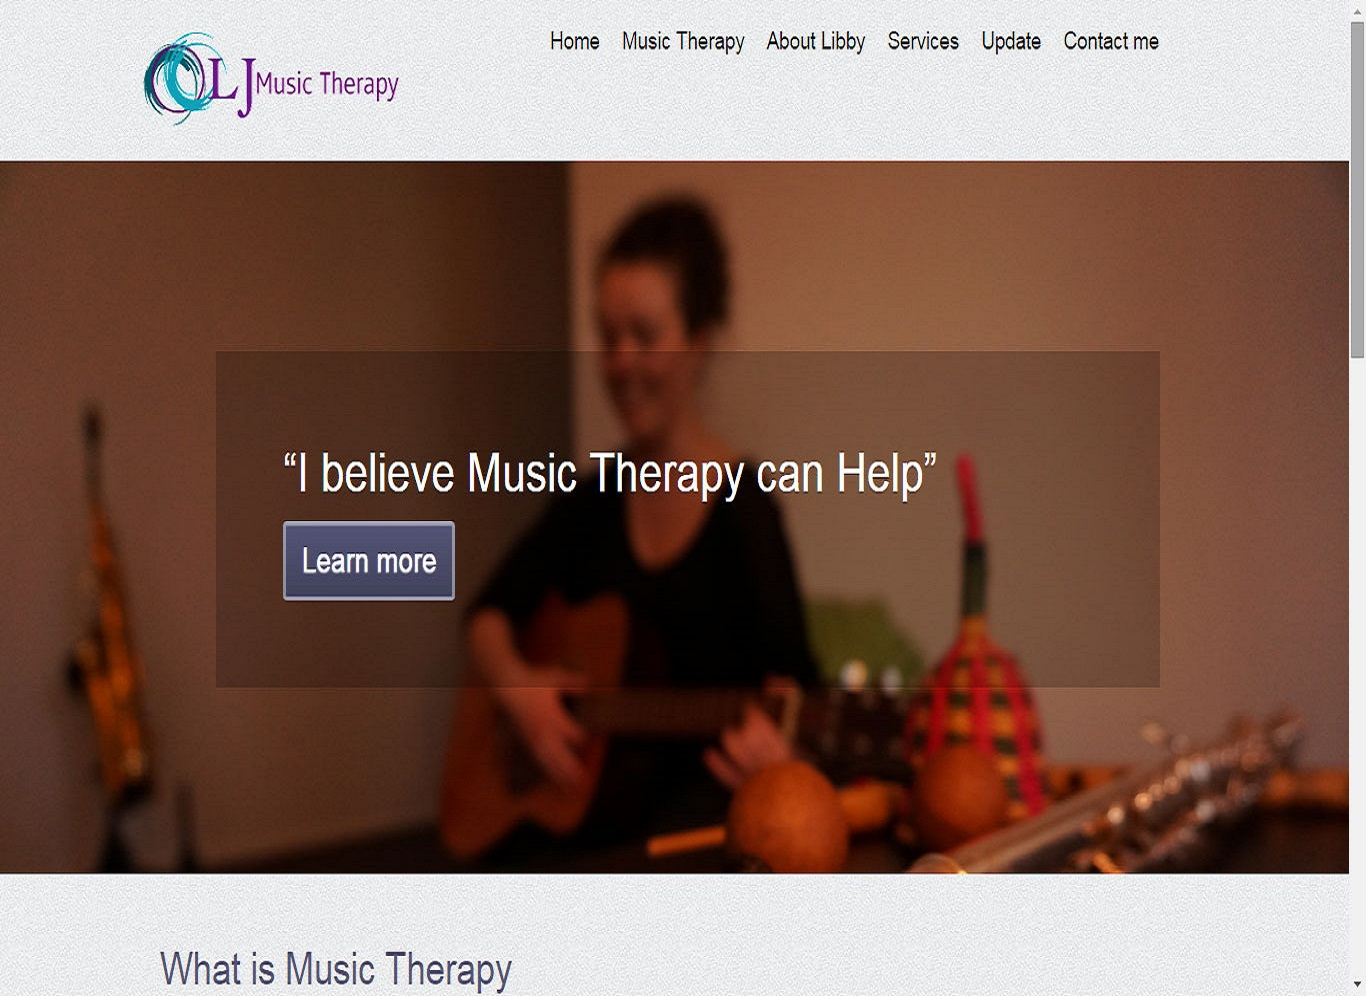 LJ Music Therapy